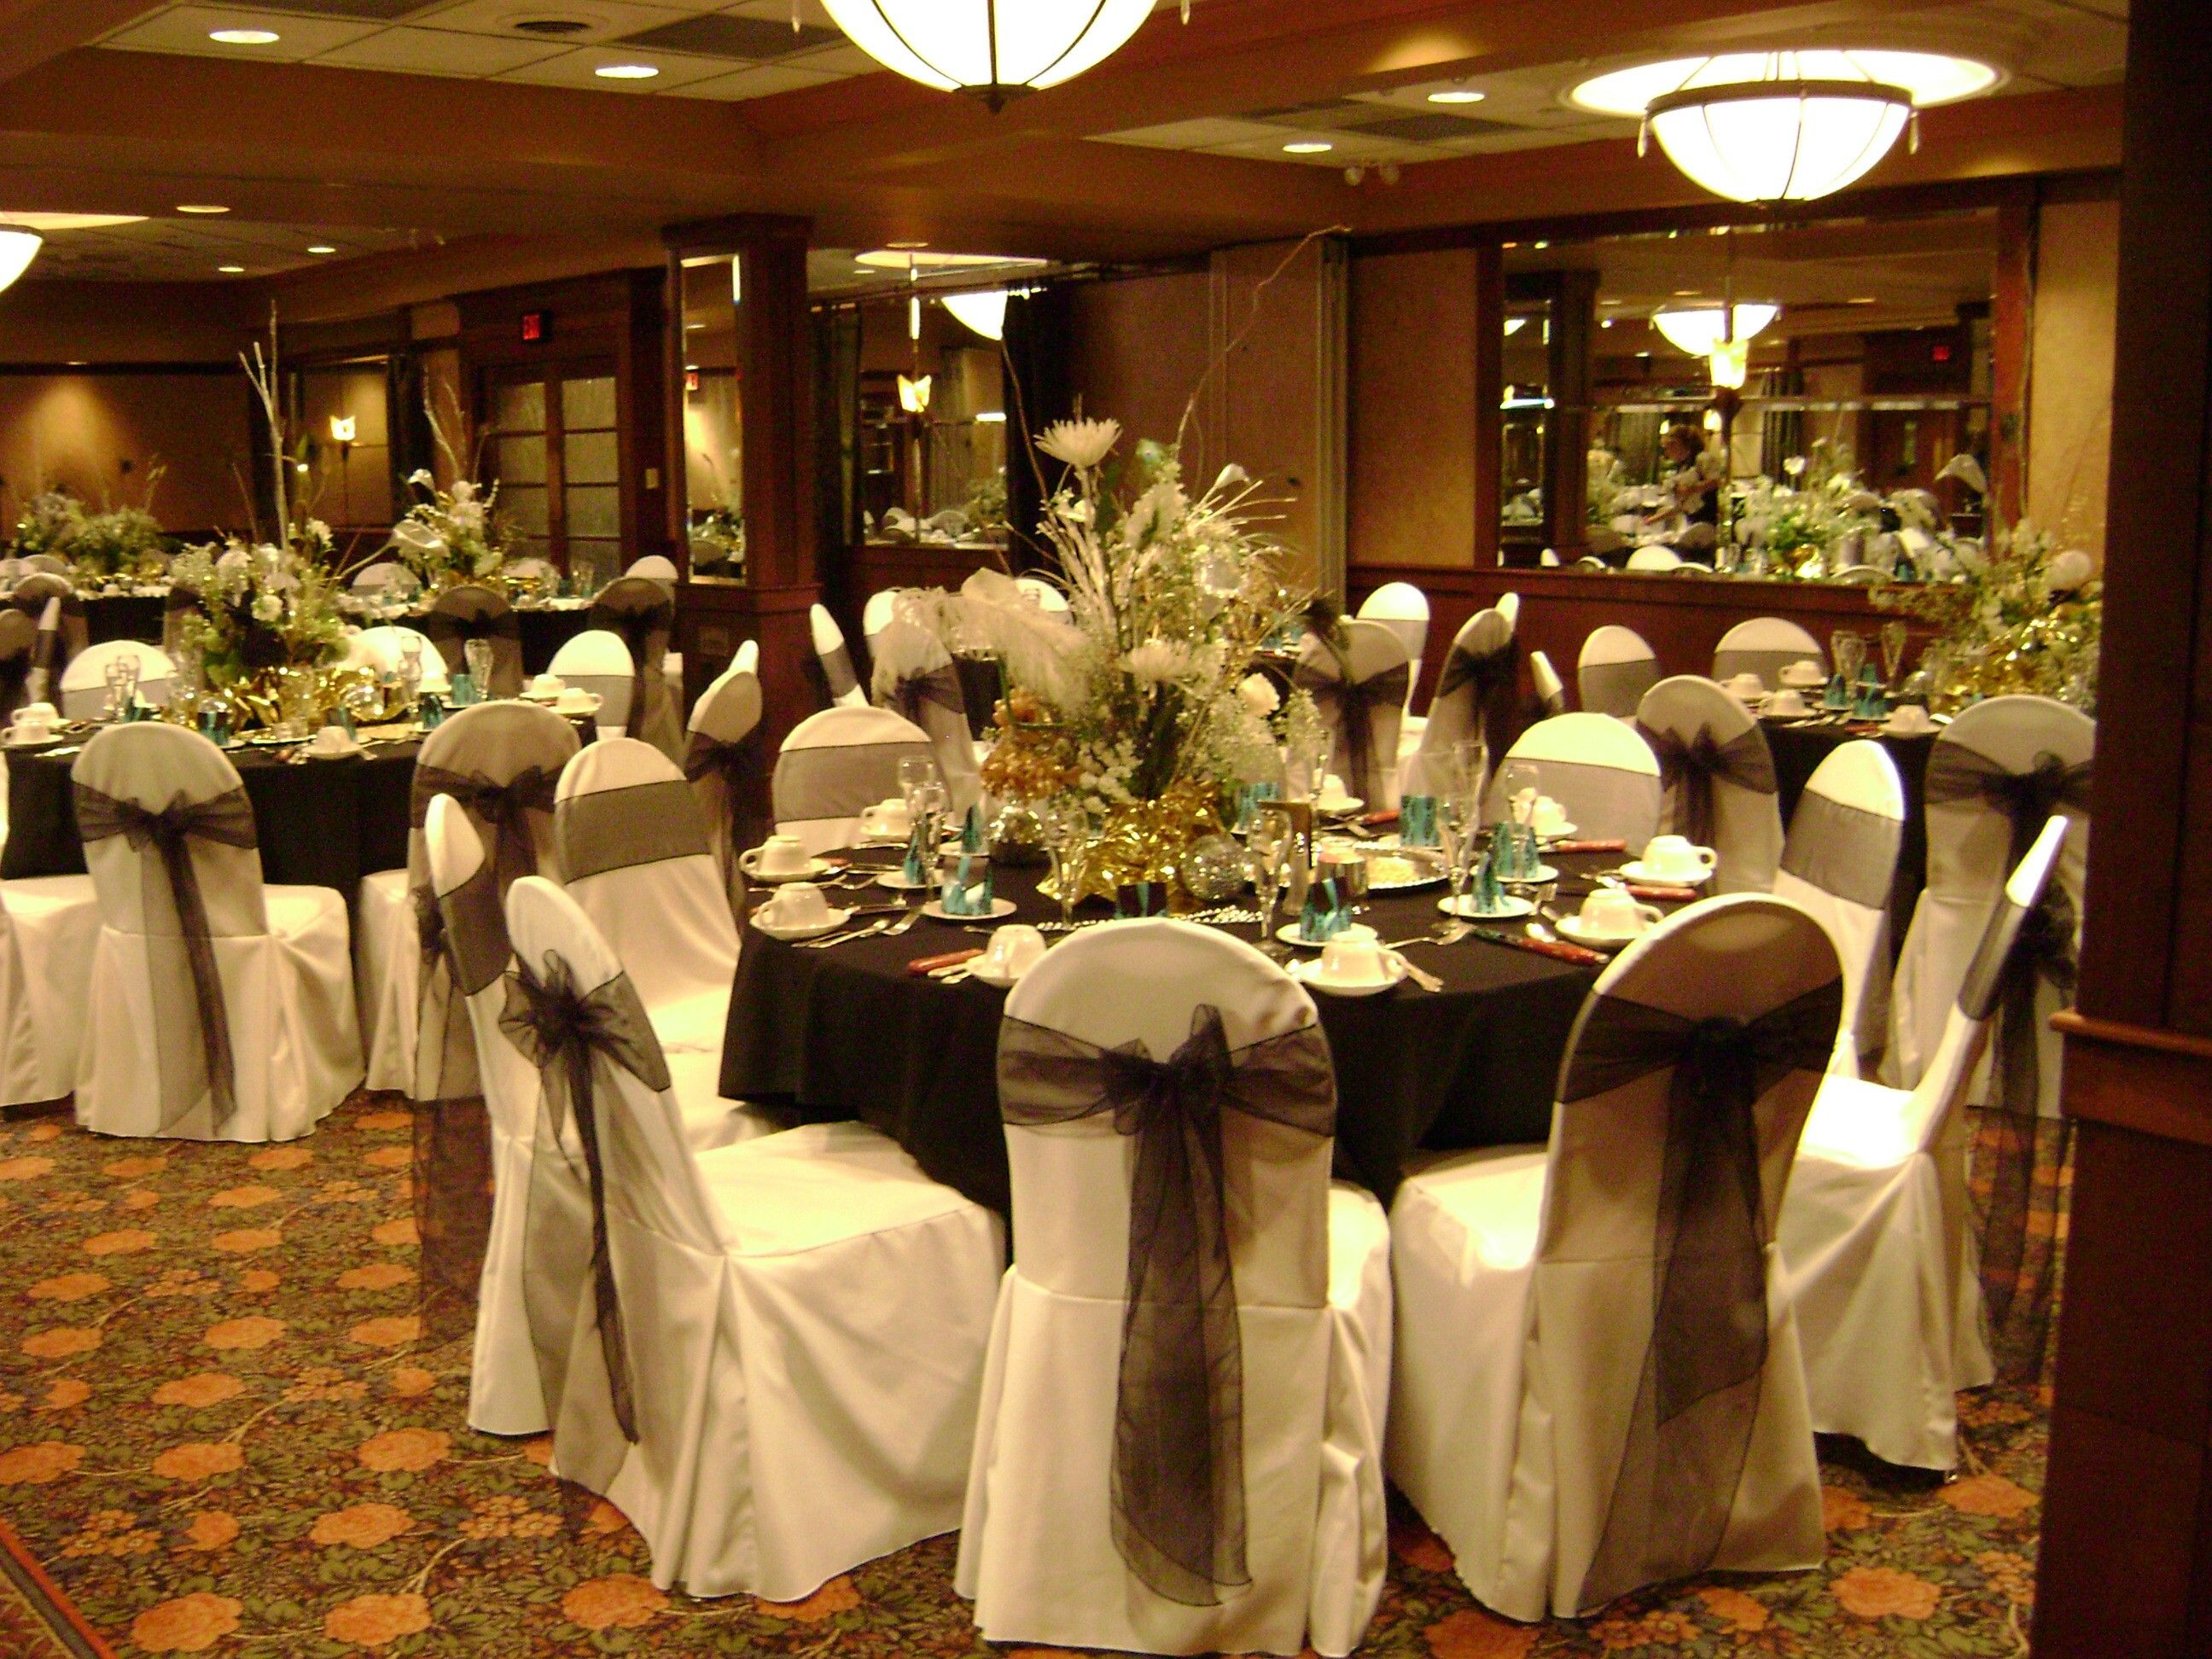 Chair Cover Elegance Design Store Wedding Covers All About Michigan